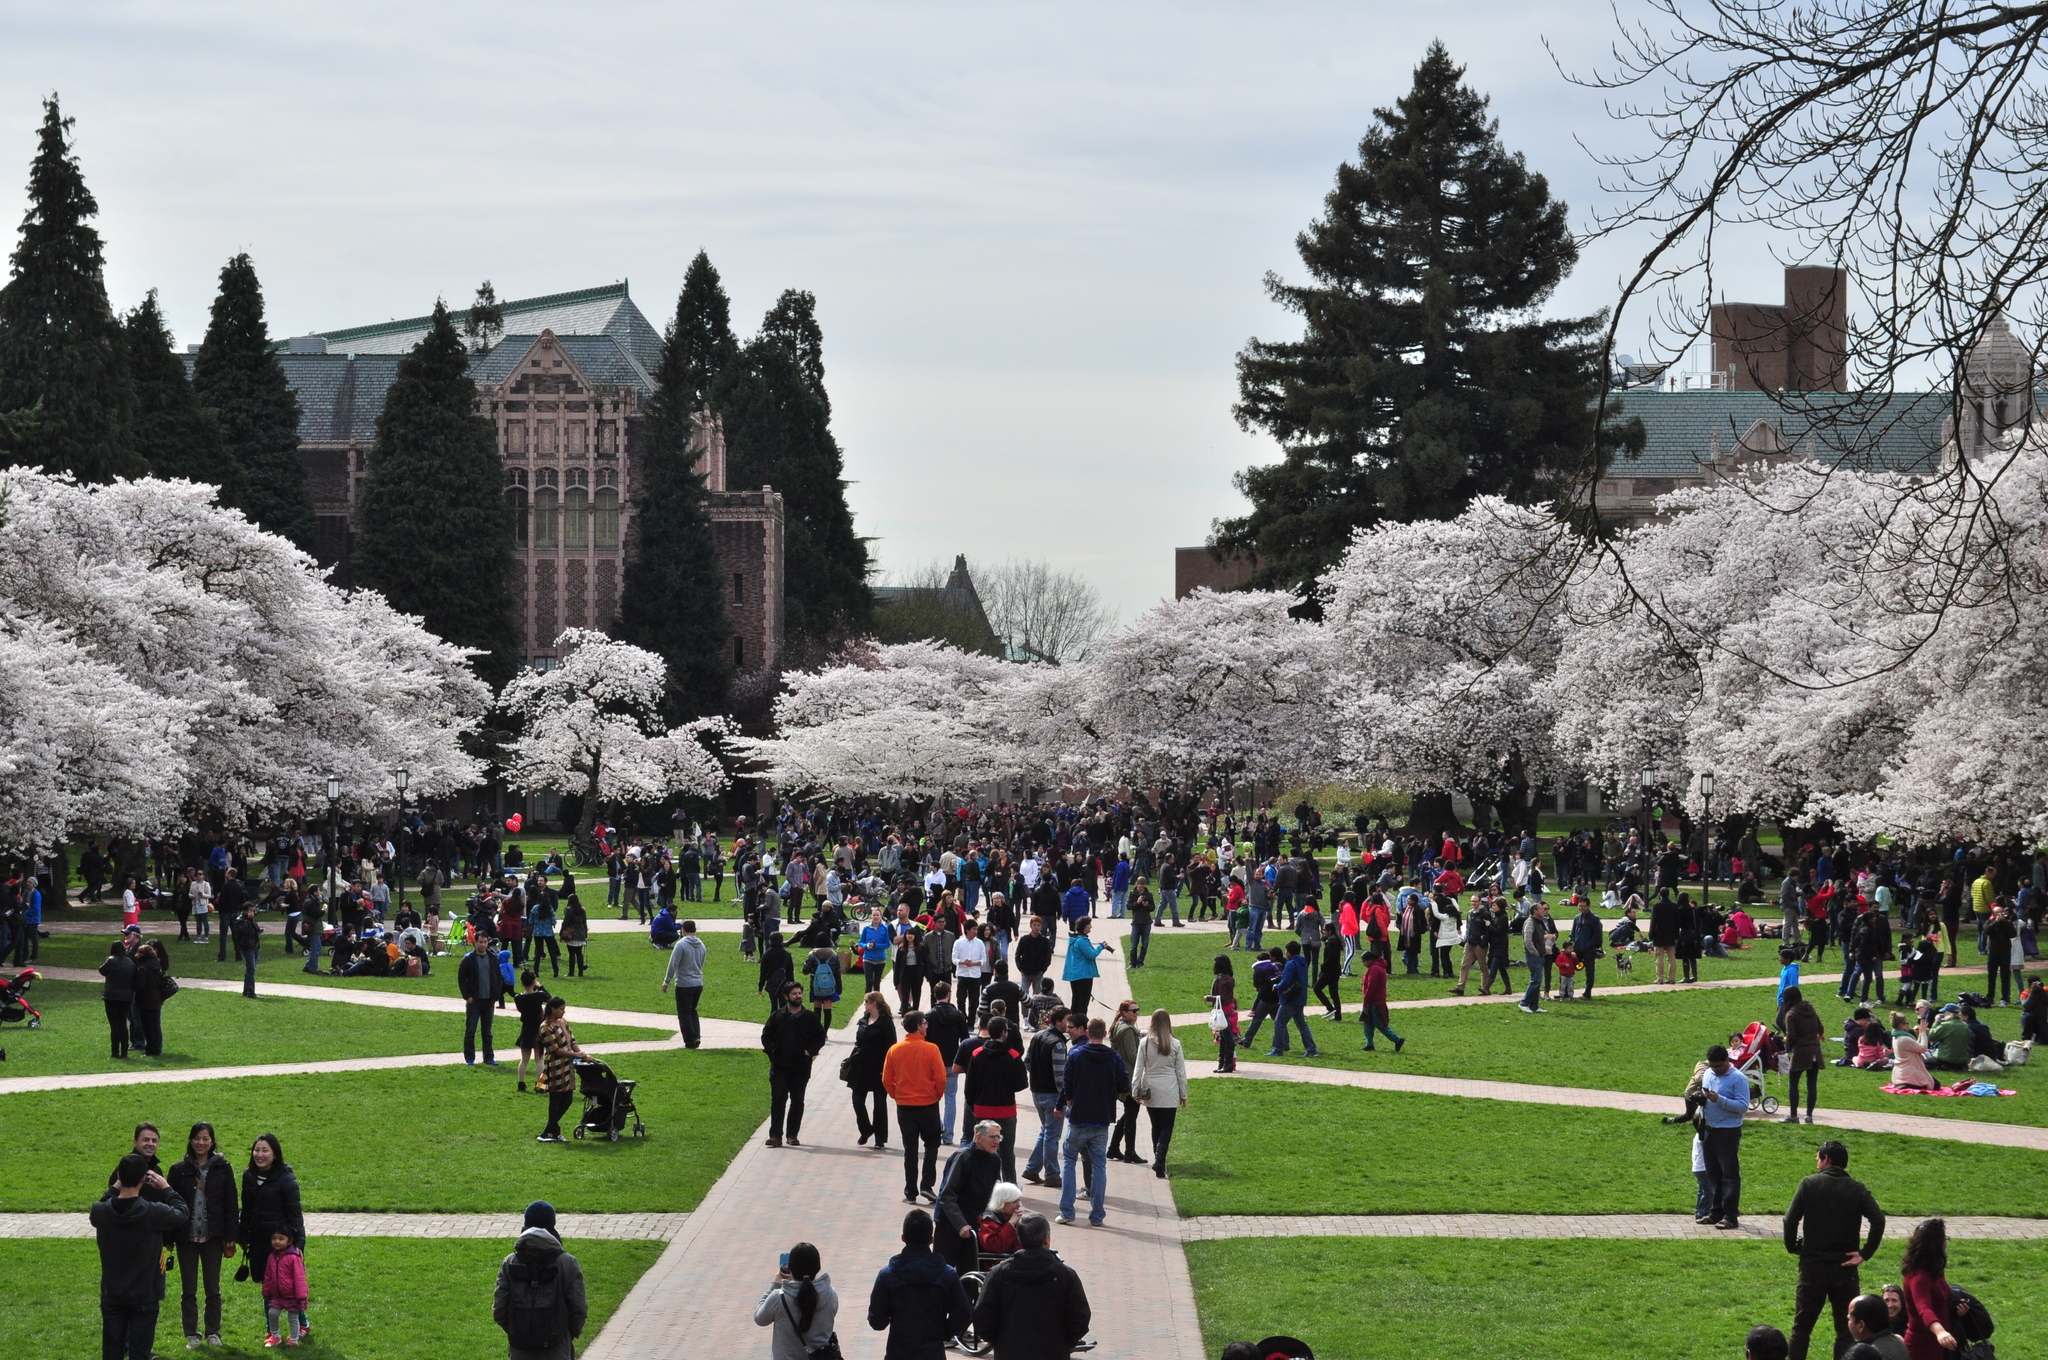 Why Do We Fall Bruce Wallpaper Diversity Numbers To Celebrate At University Of Washington